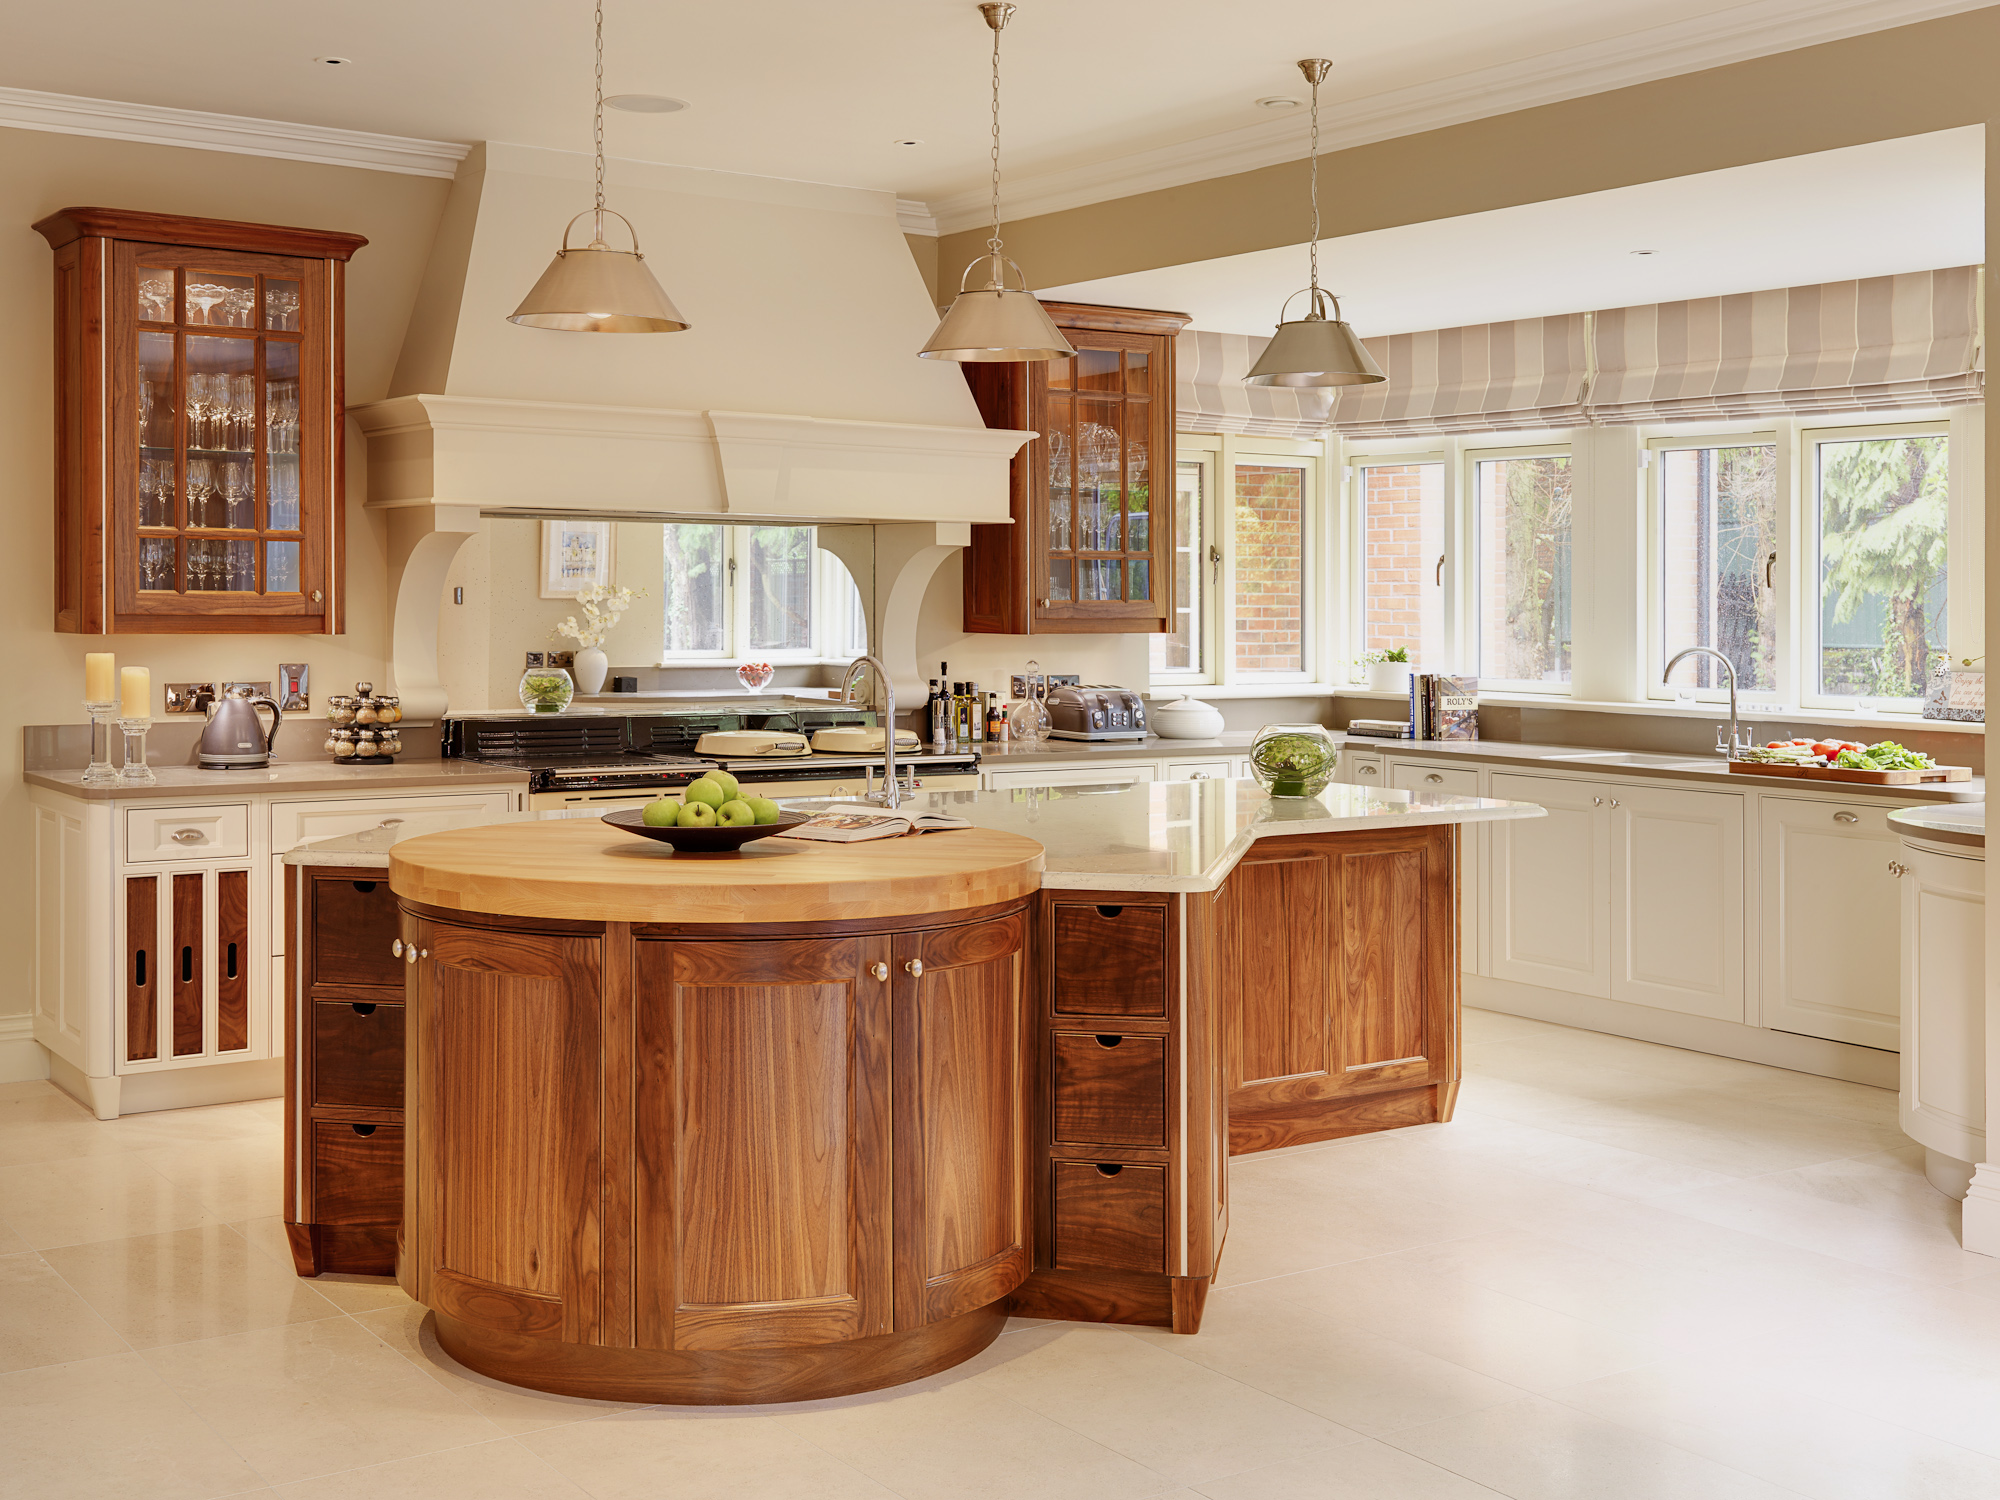 2013 Trends In Kitchen Design The Importance Of Colour